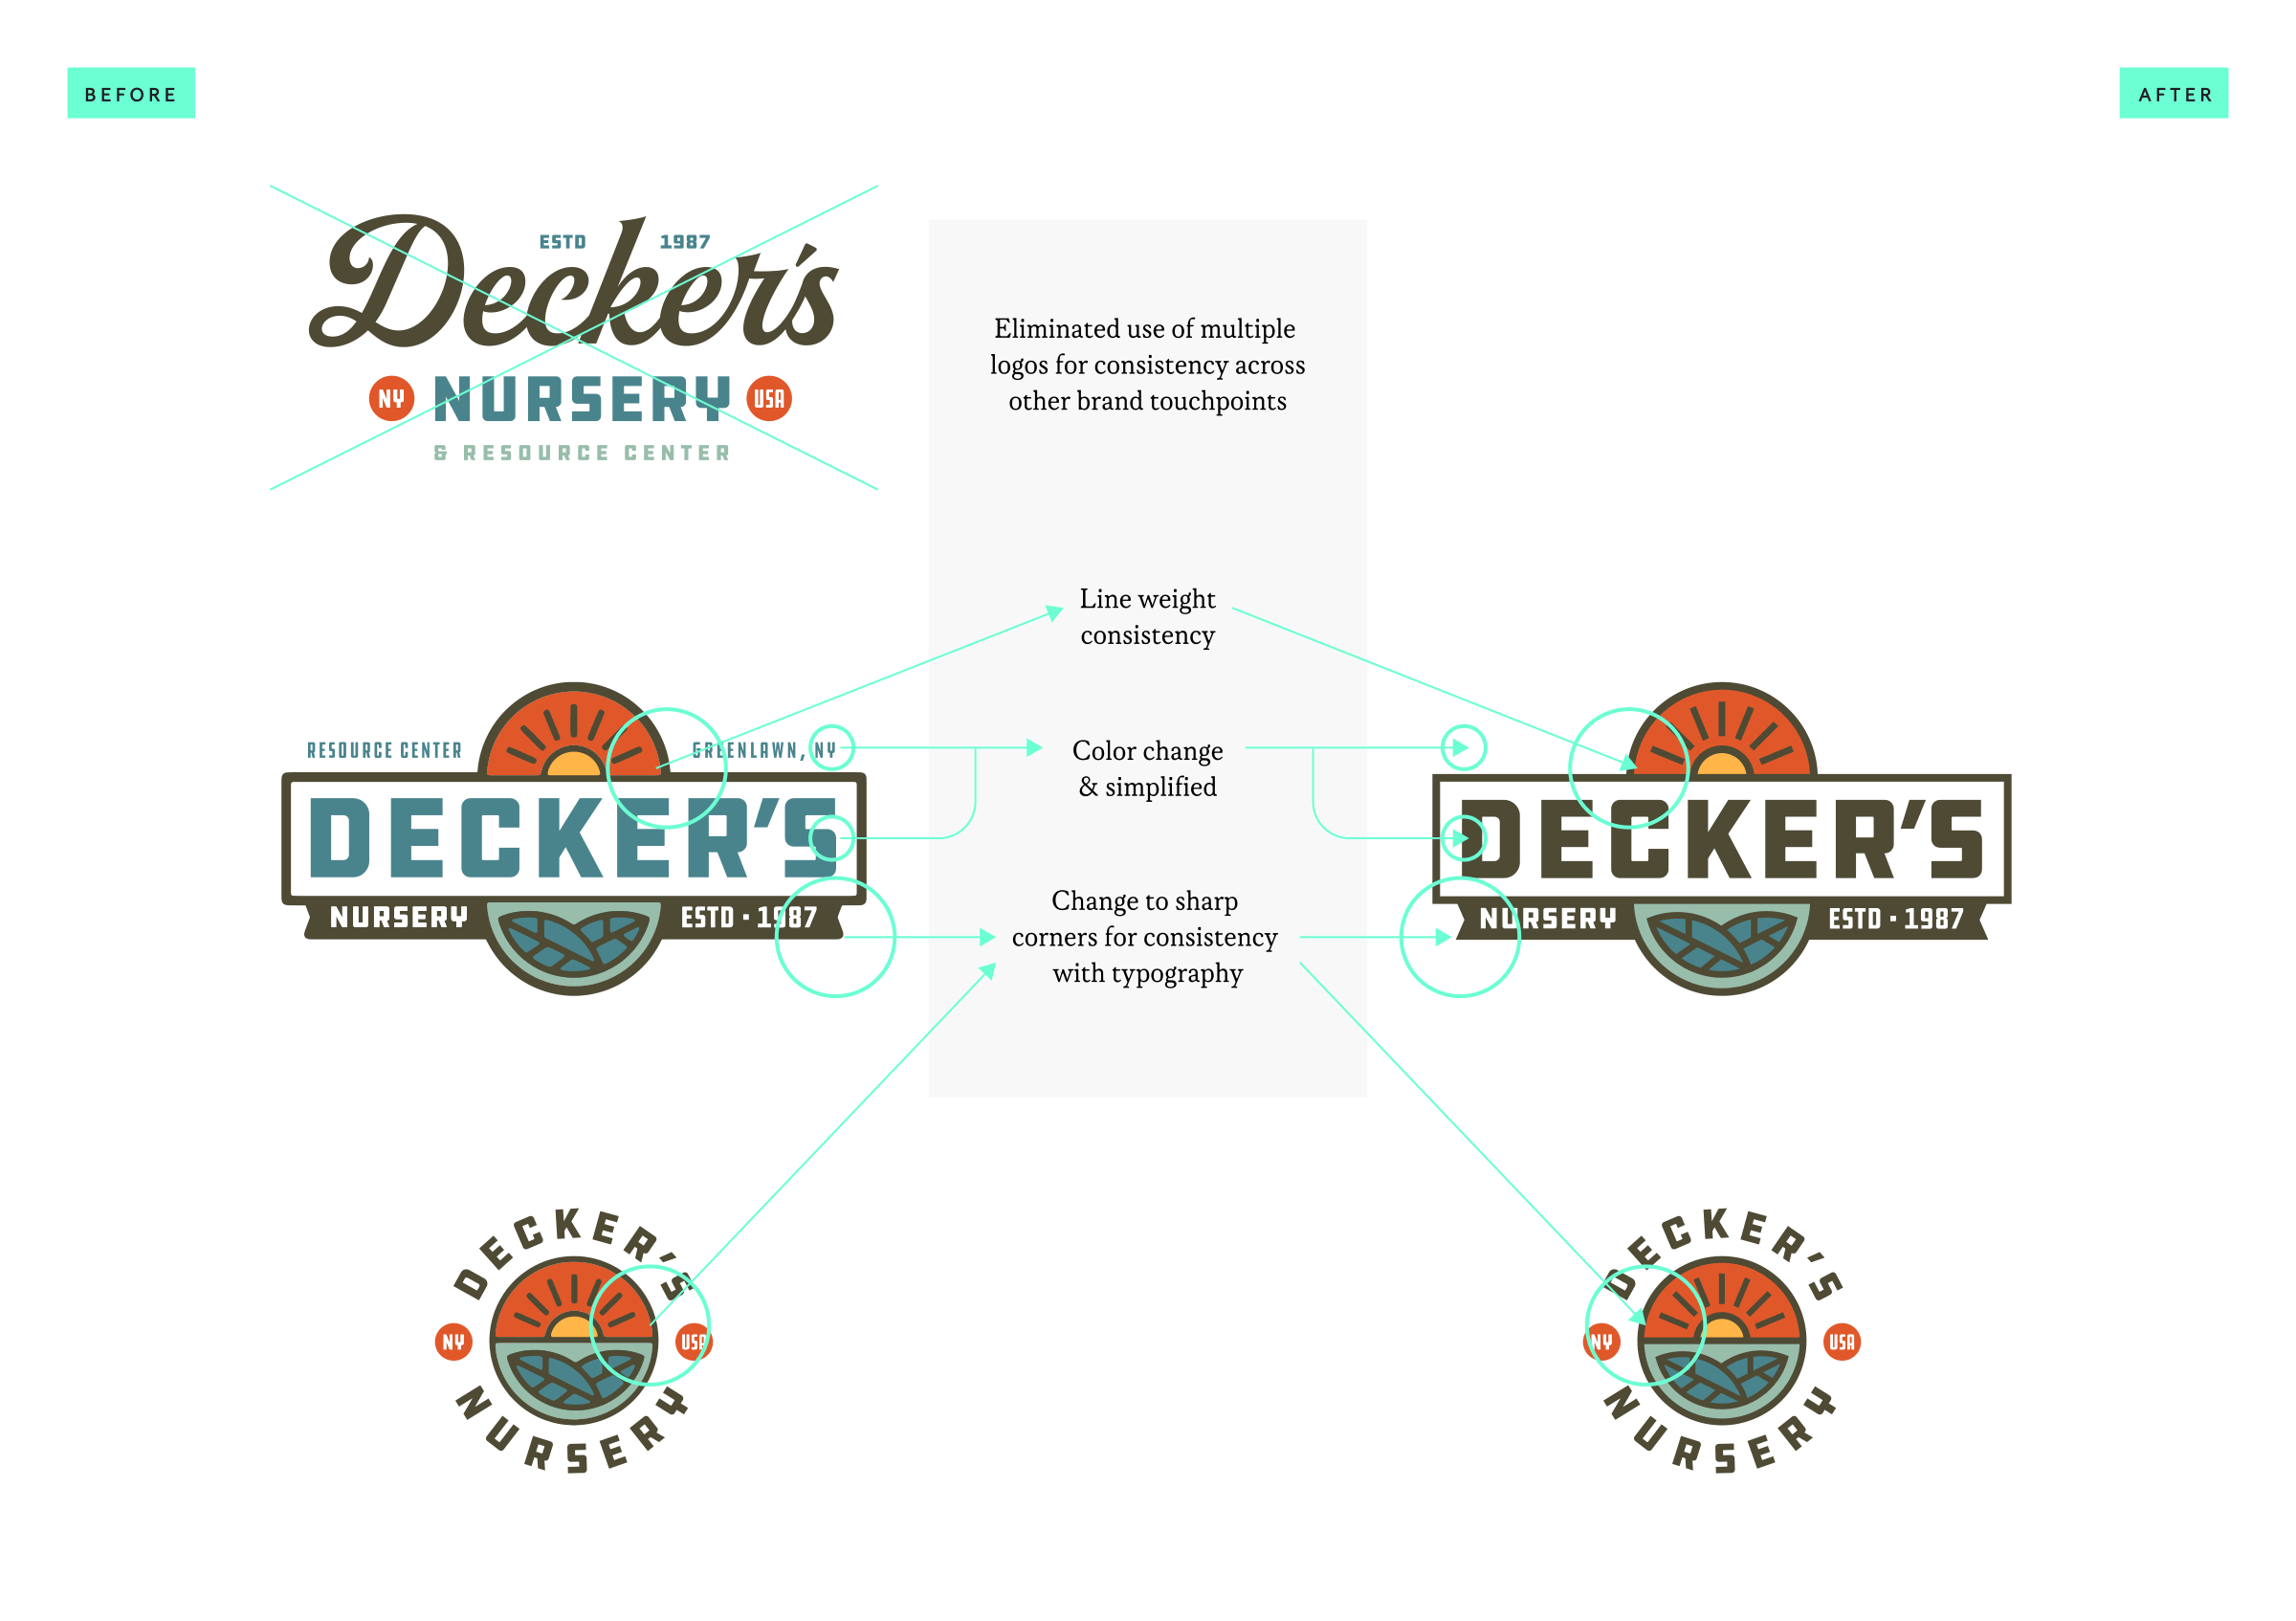 Before and After of Decker's Nursery logos